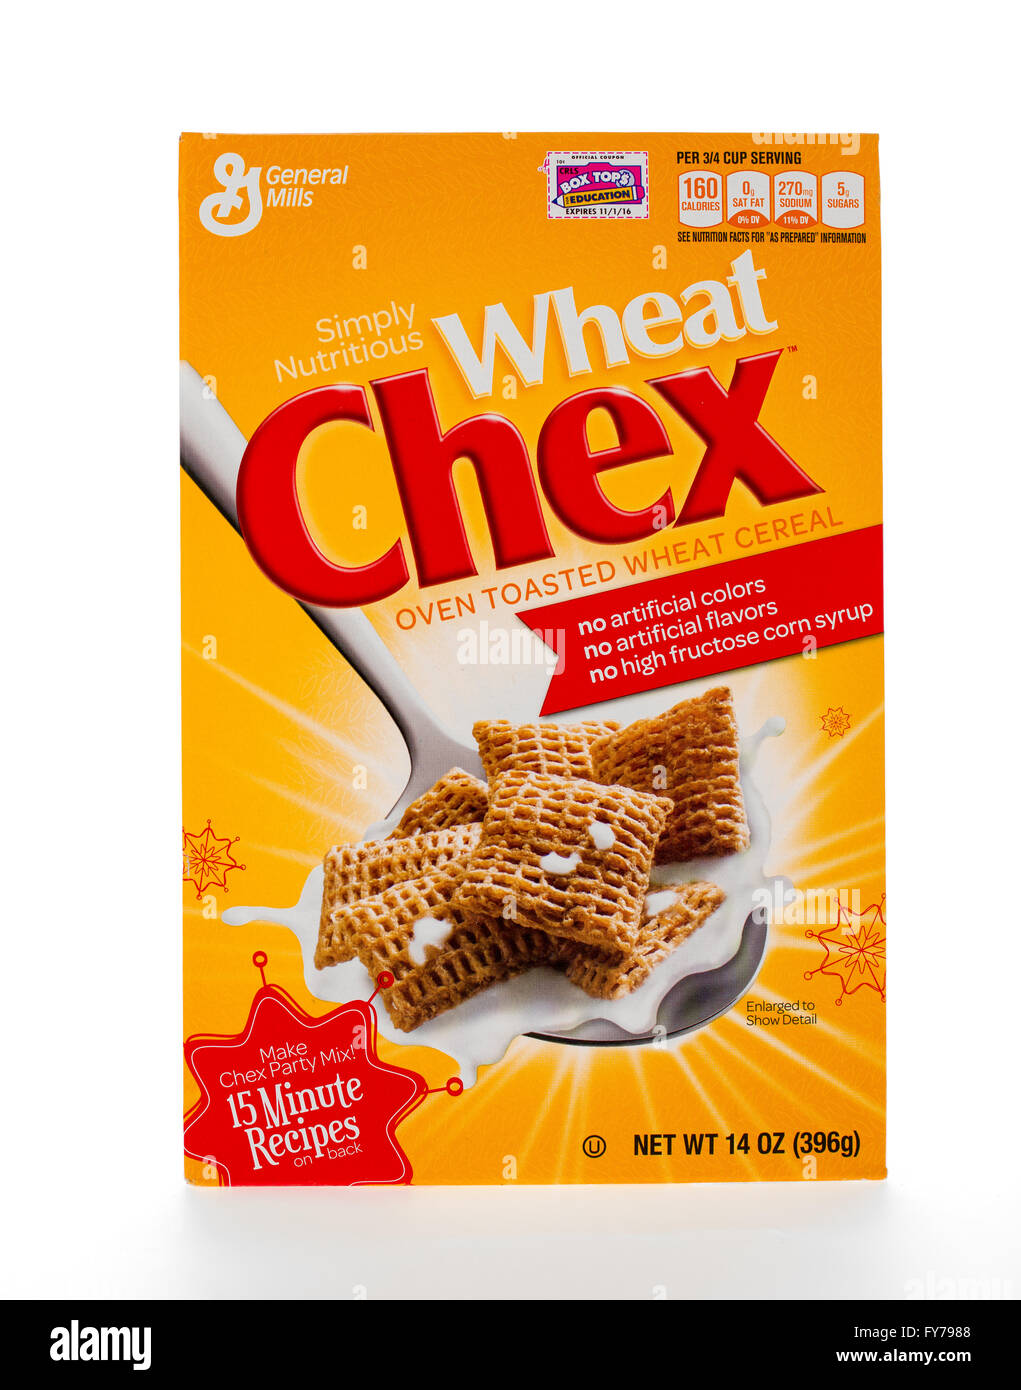 Winneconne, WI - 7 February 2015: Box of Chex Wheat cereal a product of General Mills - Stock Image